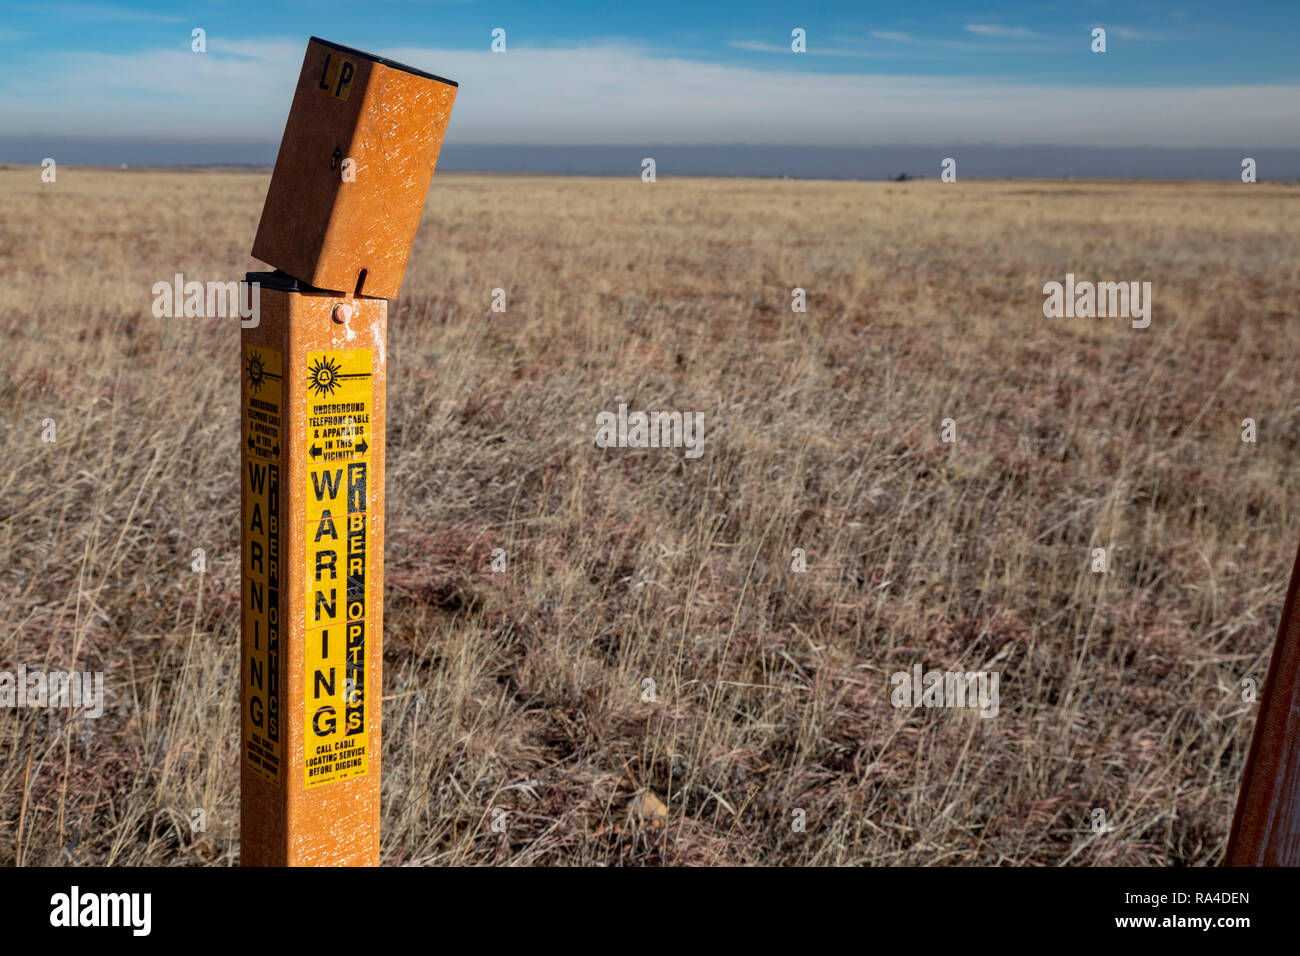 Denver, Colorado - A marker shows where an underground fiber optic cable runs through Rocky Flats National Wildlife Refuge,. - Stock Image